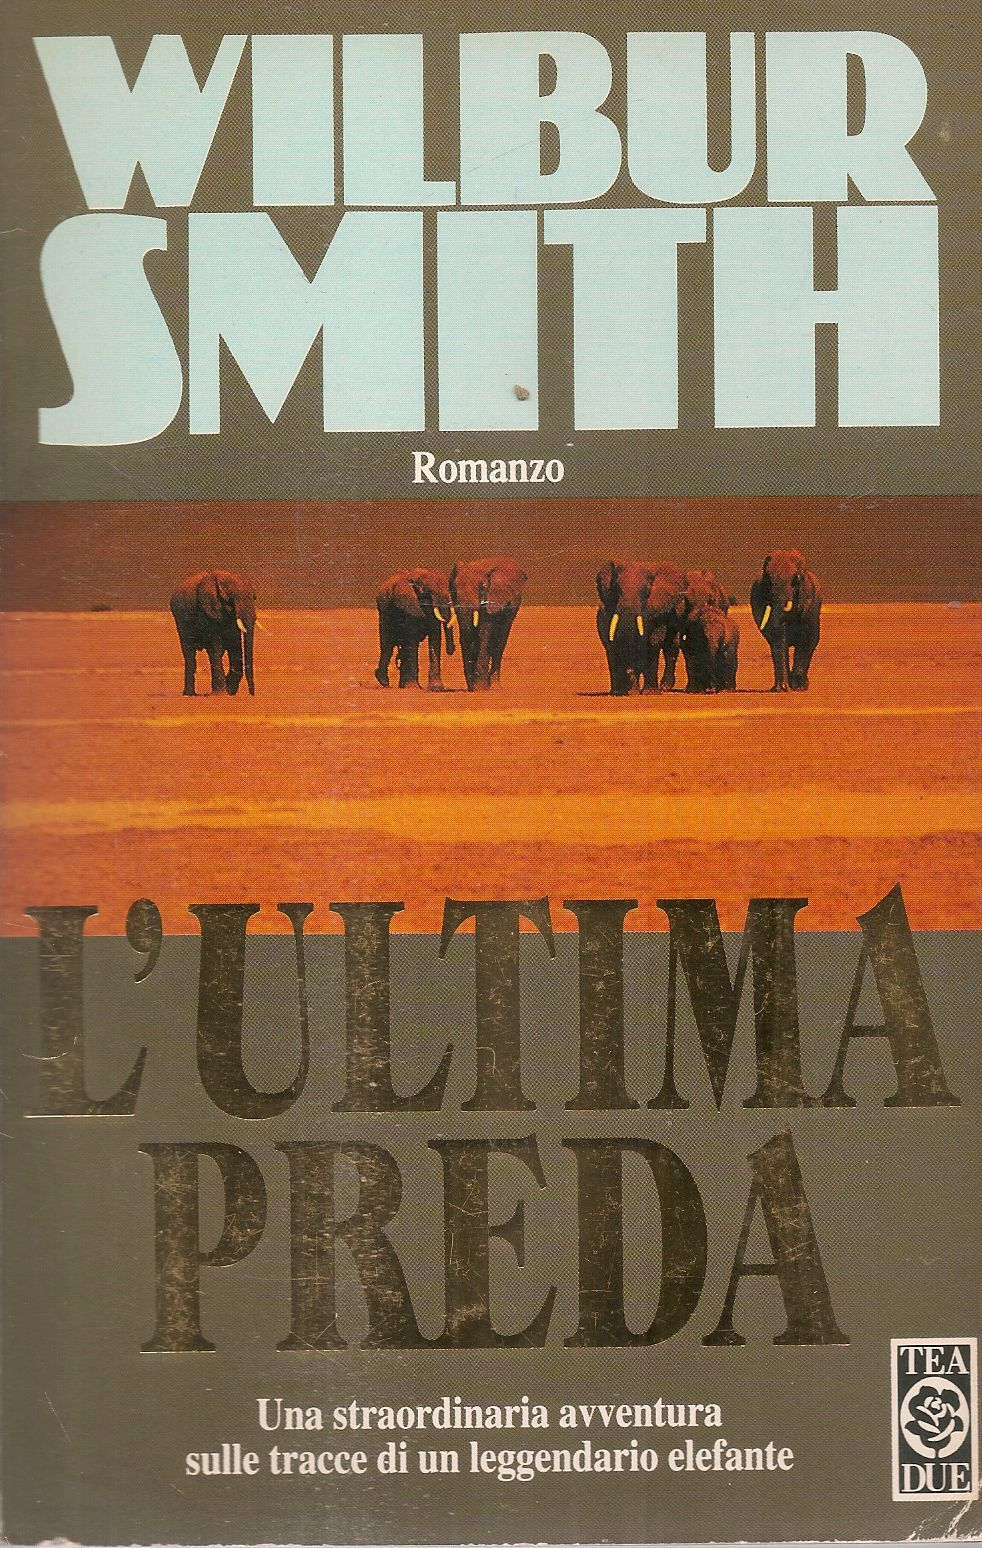 L'ULTIMA PREDA - WILBUR SMITH - TEA DUE 1998